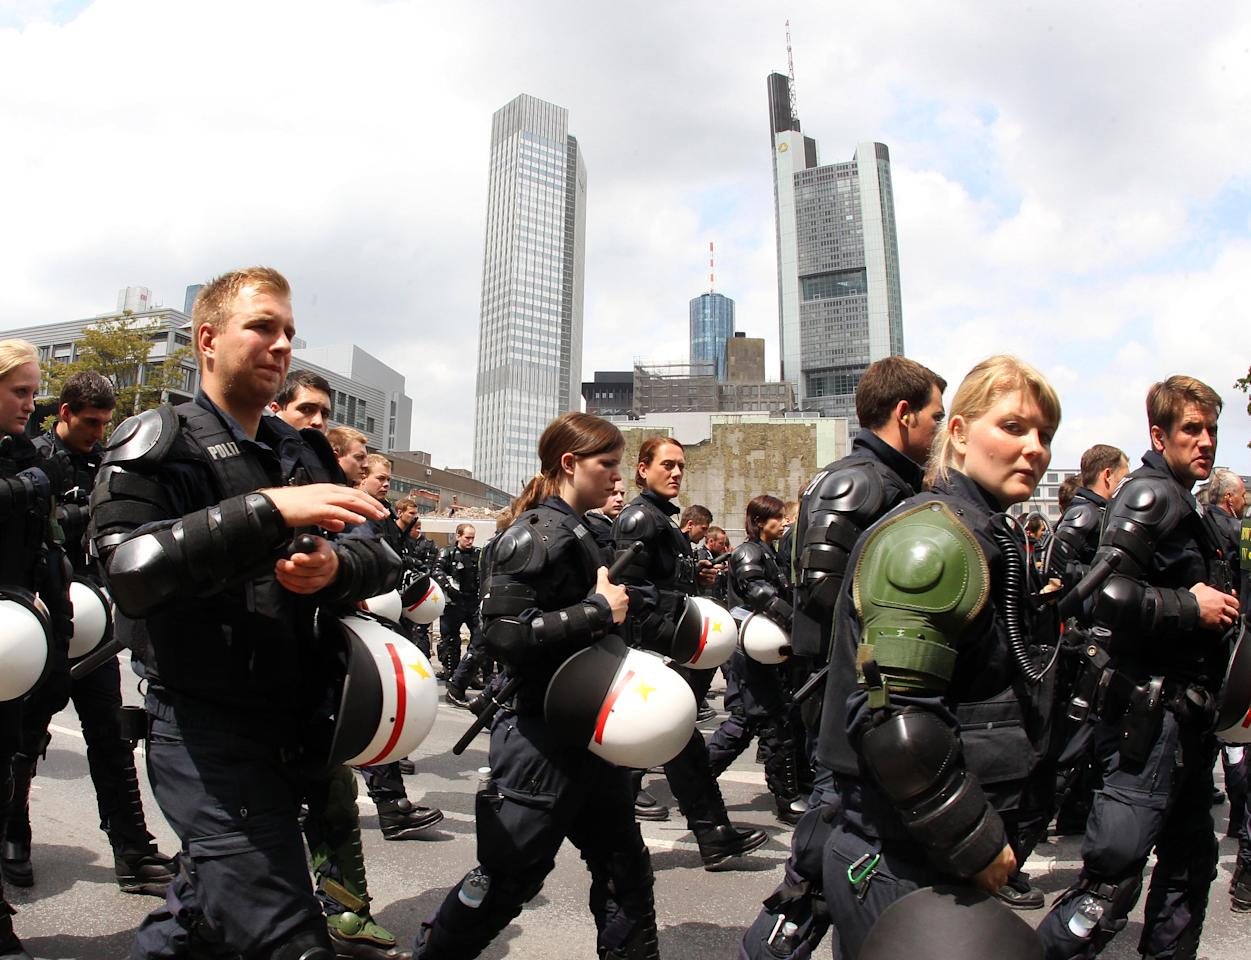 German police officers escort an anti capitalism protest march with some 20,000 people in Frankfurt, Germany, Saturday, May 19, 2012. Protesters peacefully filled the city center of continental Europe's biggest financial hub in their protest against the dominance of banks and what they perceive to be untamed capitalism, Frankfurt police spokesman Ruediger Regis said. The protest group calling itself Blockupy has called for blocking the access to the European Central Bank, which is located in Frankfurt's business district. (AP Photo/Michael Probst)